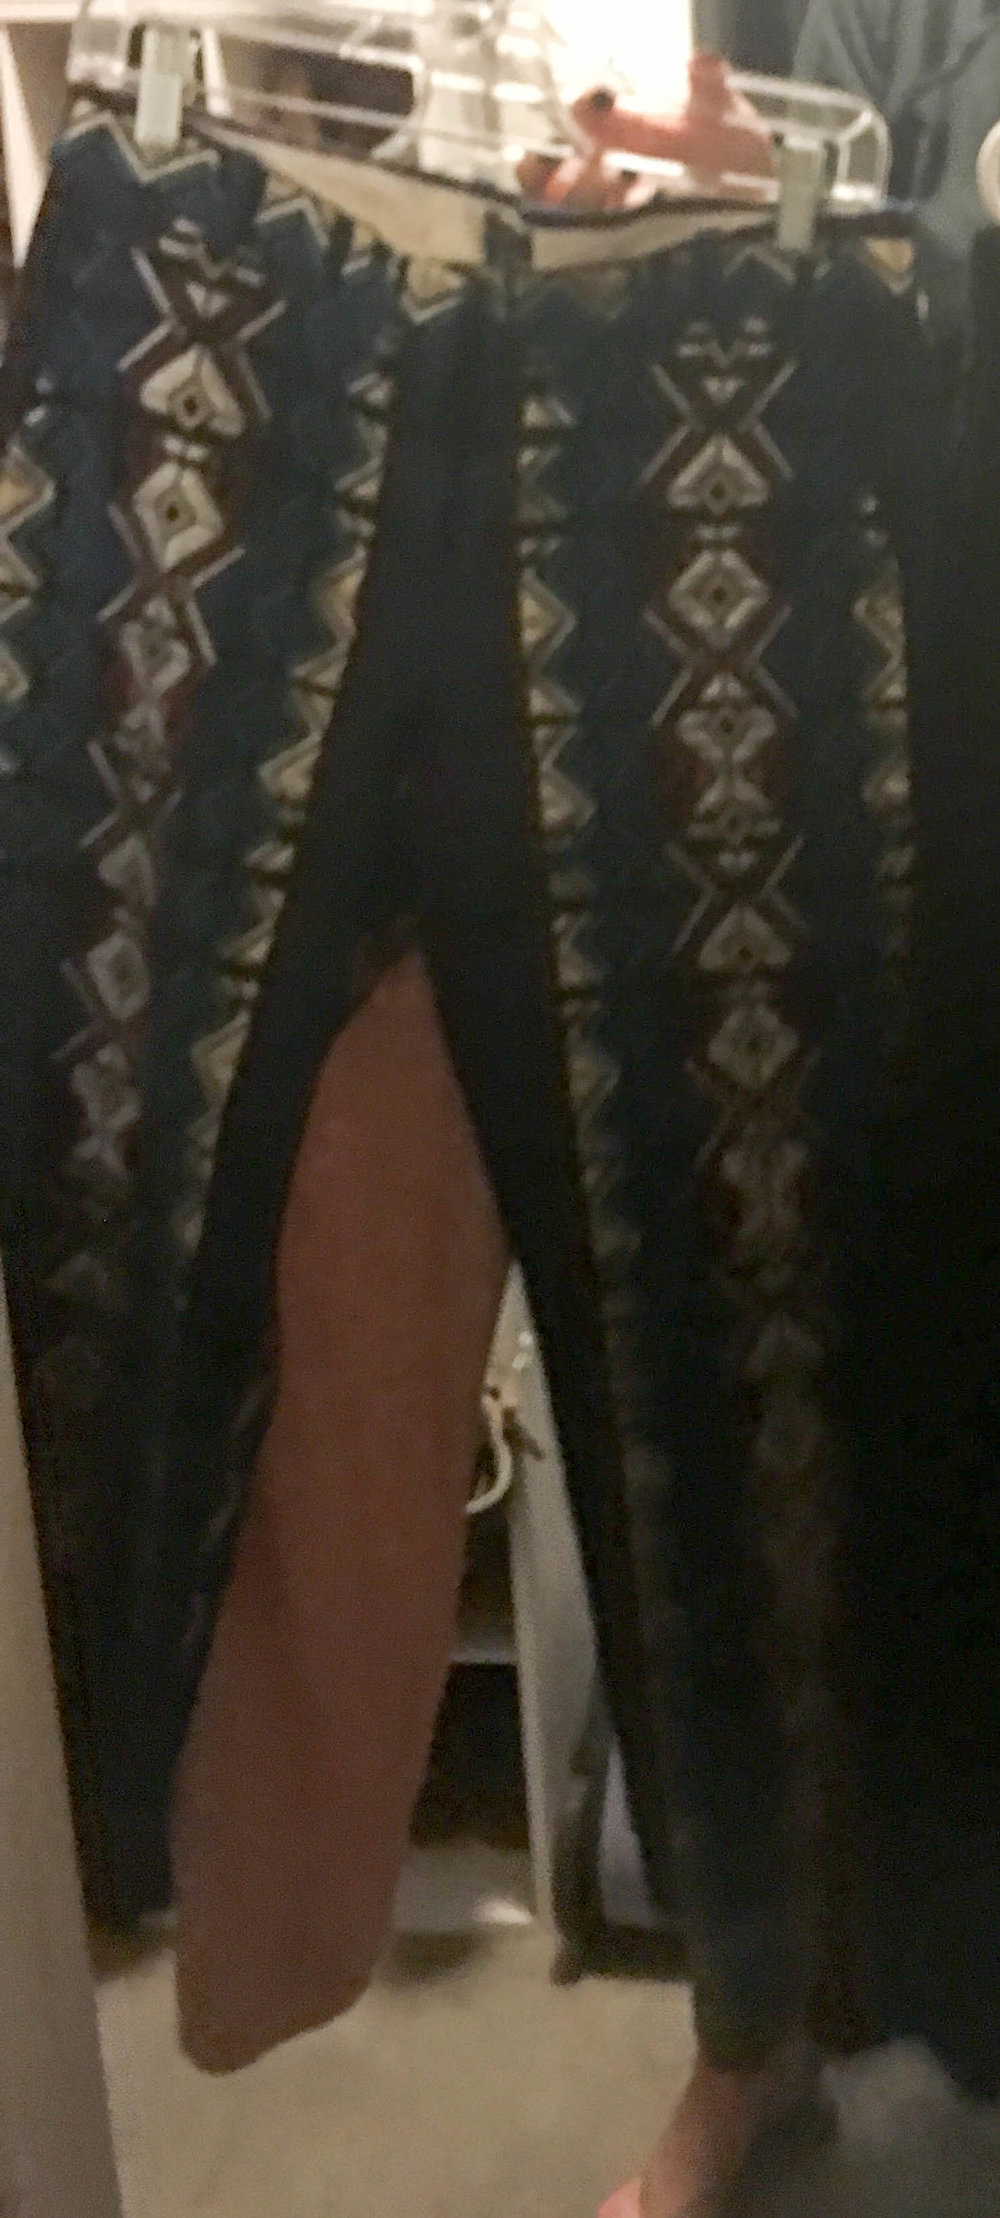 Trousers - Patterned and Black Edited.jpg